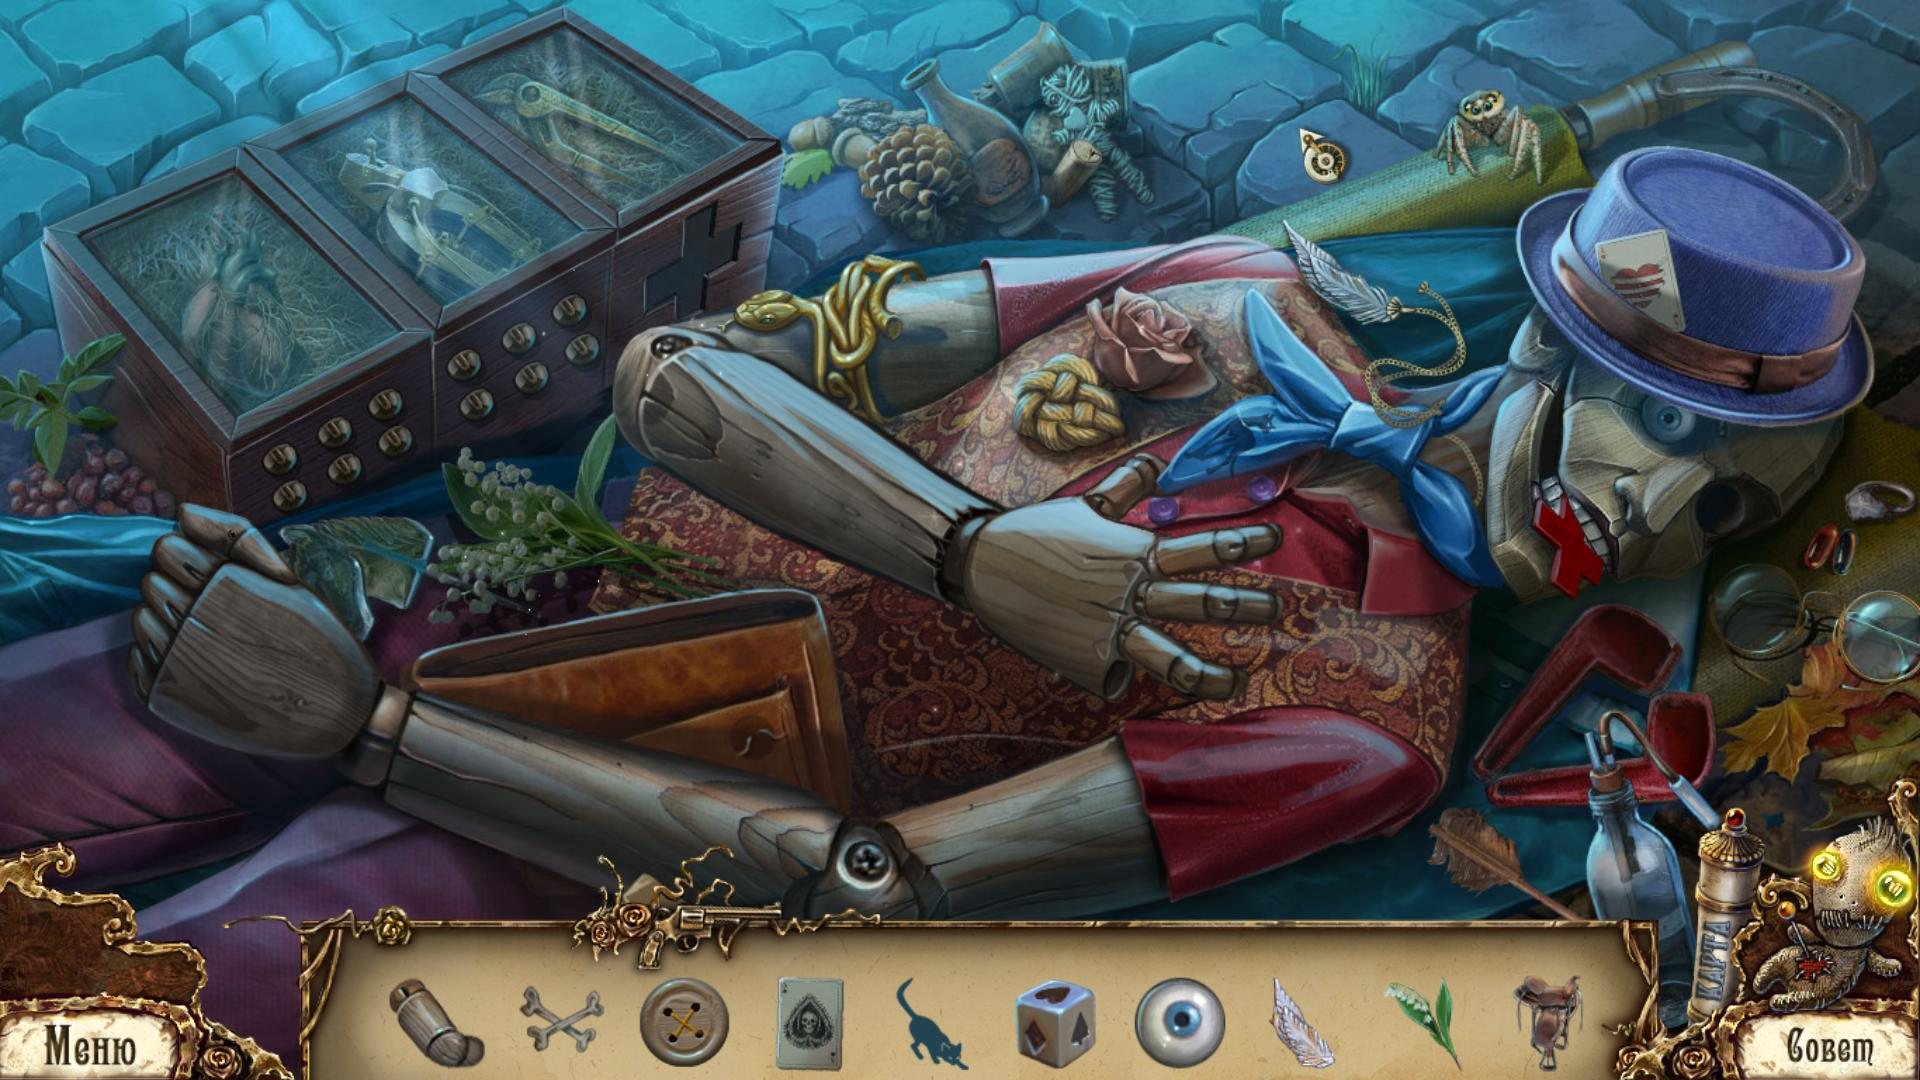 PuppetShow (Her Cruel Collection. Collector's Edition) / RU / Hidden objects / 2016 / PC (Windows)